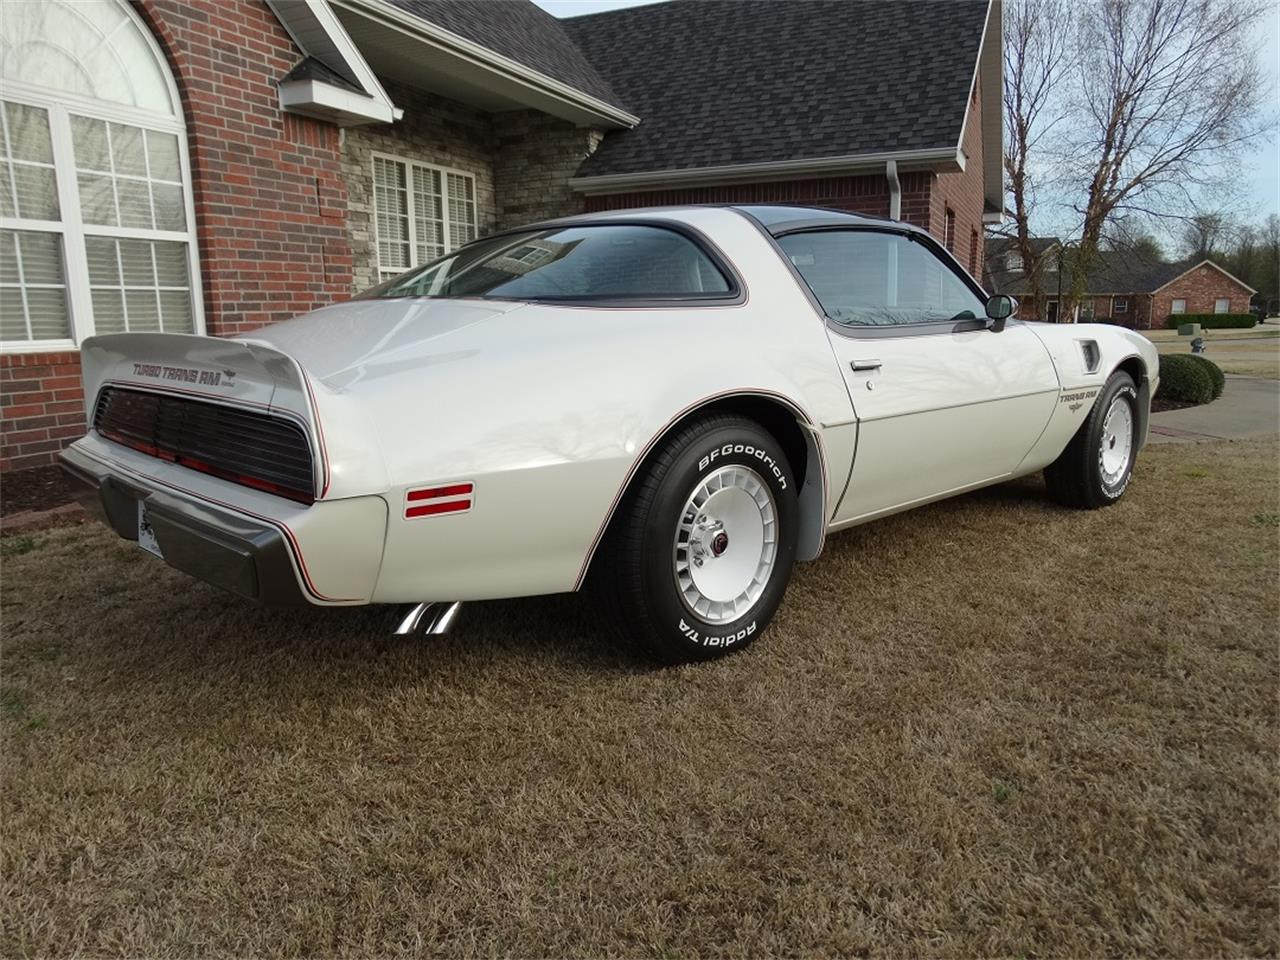 Large Picture of 1980 Pontiac Firebird Trans Am located in Arkansas - $32,900.00 Offered by a Private Seller - N8ME